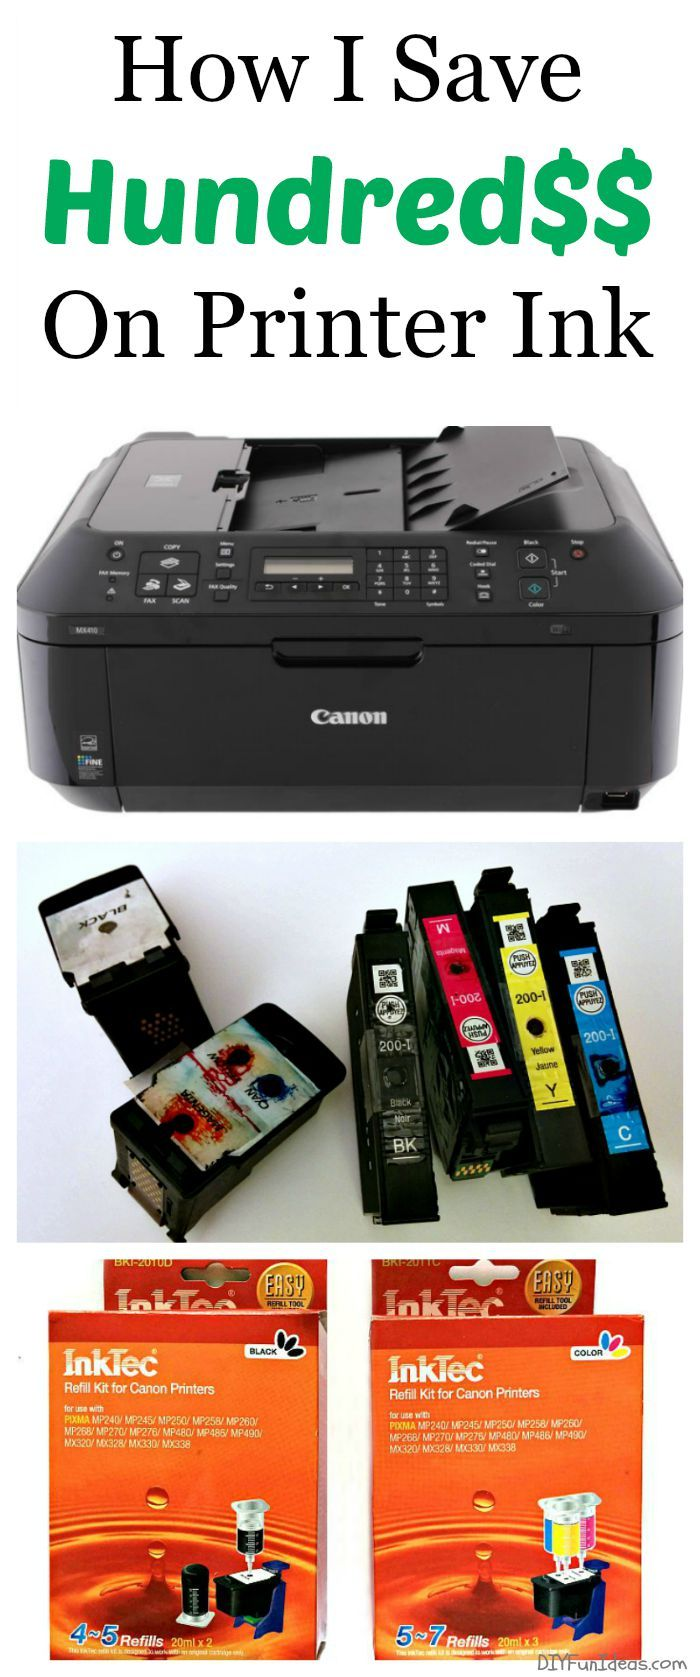 With back to school going on, it's time to start saving. Here's HOW I SAVE HUNDRED$$ ON PRINTER INK........Most popular posts!